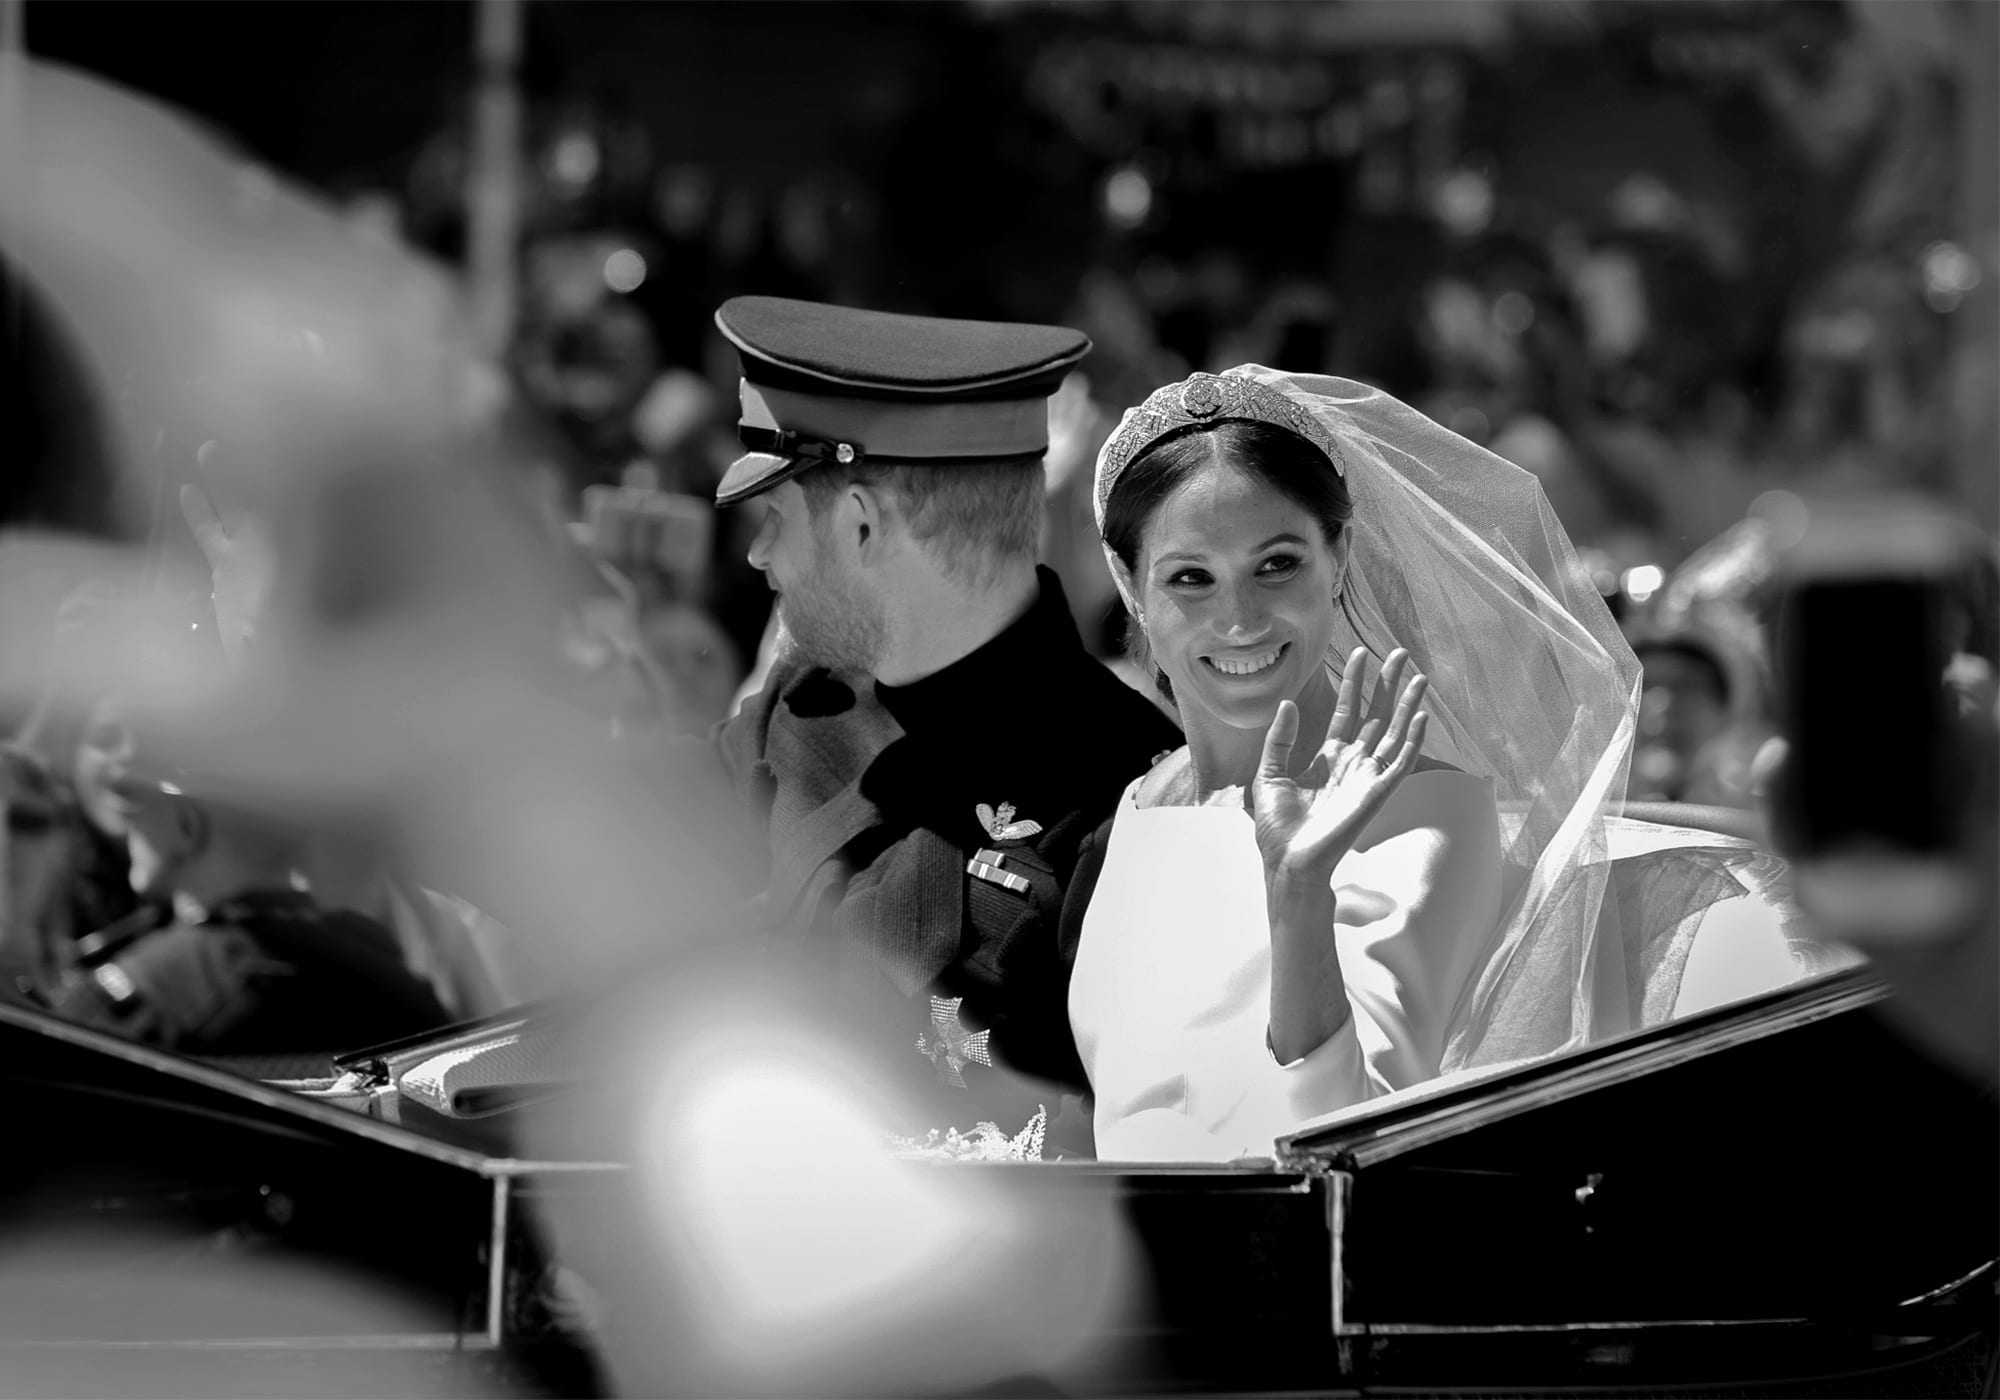 a bride sitting in a carriage next to her groom waves and smiles as people on the street